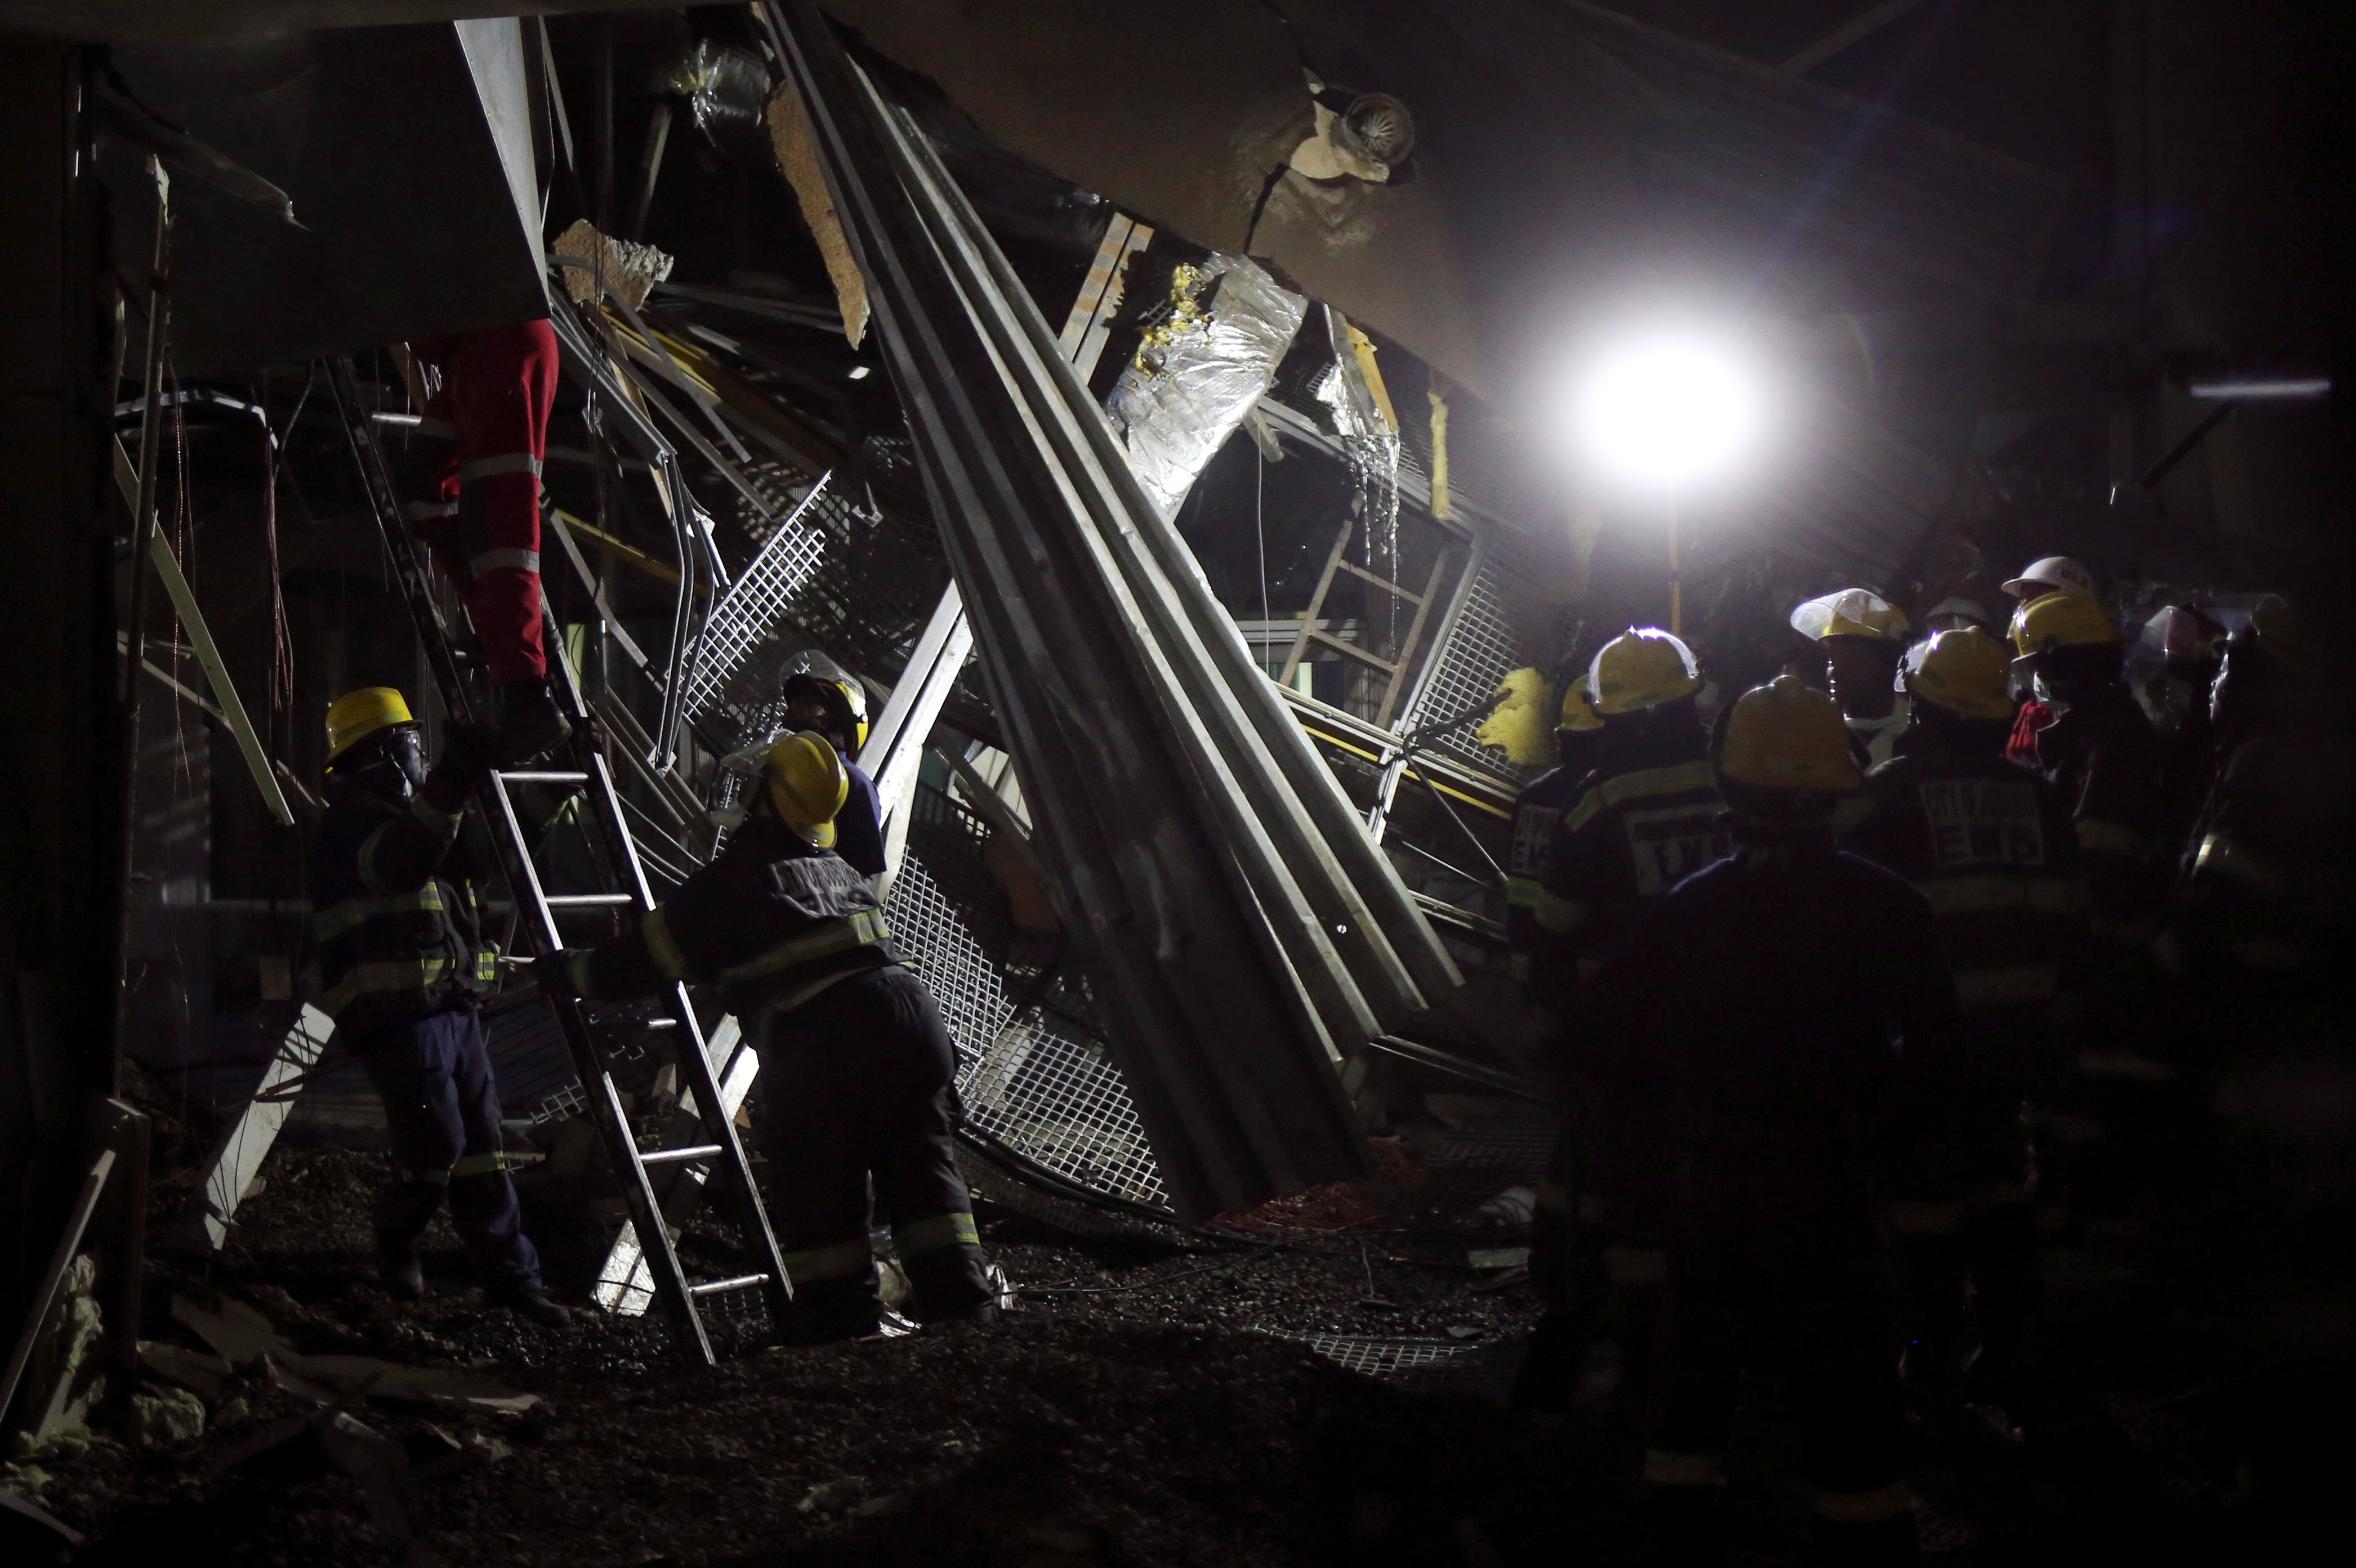 Rescue workers are seen at a site of a roof collapse at Johannesburg's Charlotte Maxeke state hospital in Johannesburg, South Africa. REUTERS/Siphiwe Sibeko